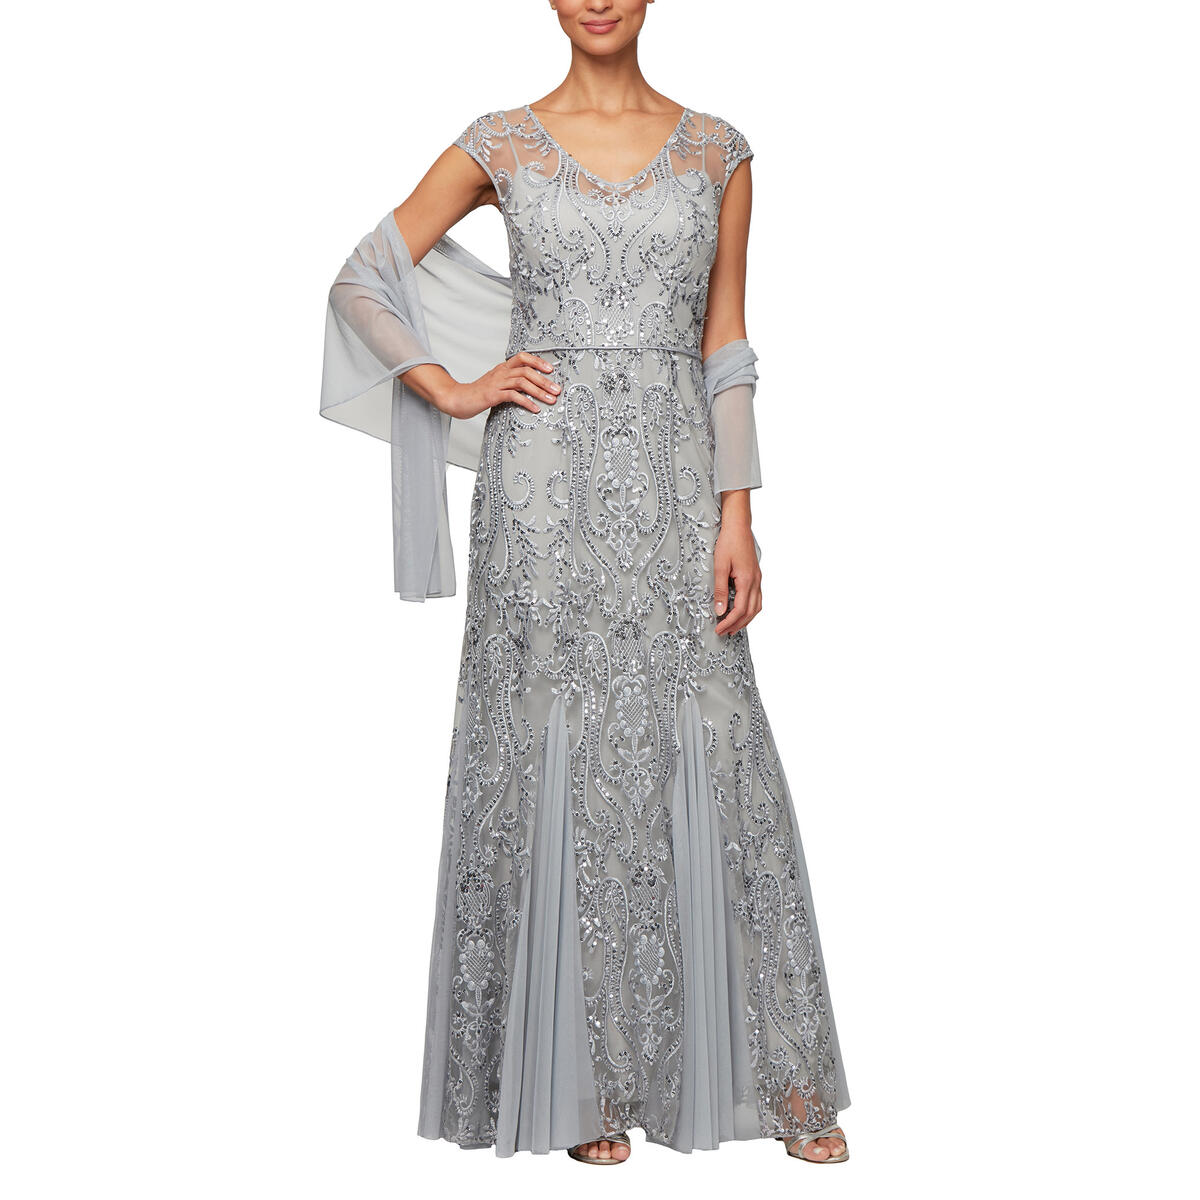 ALEX APPAREL GROUP INC - Sheer Embroidered Sequin Gown-Shawl